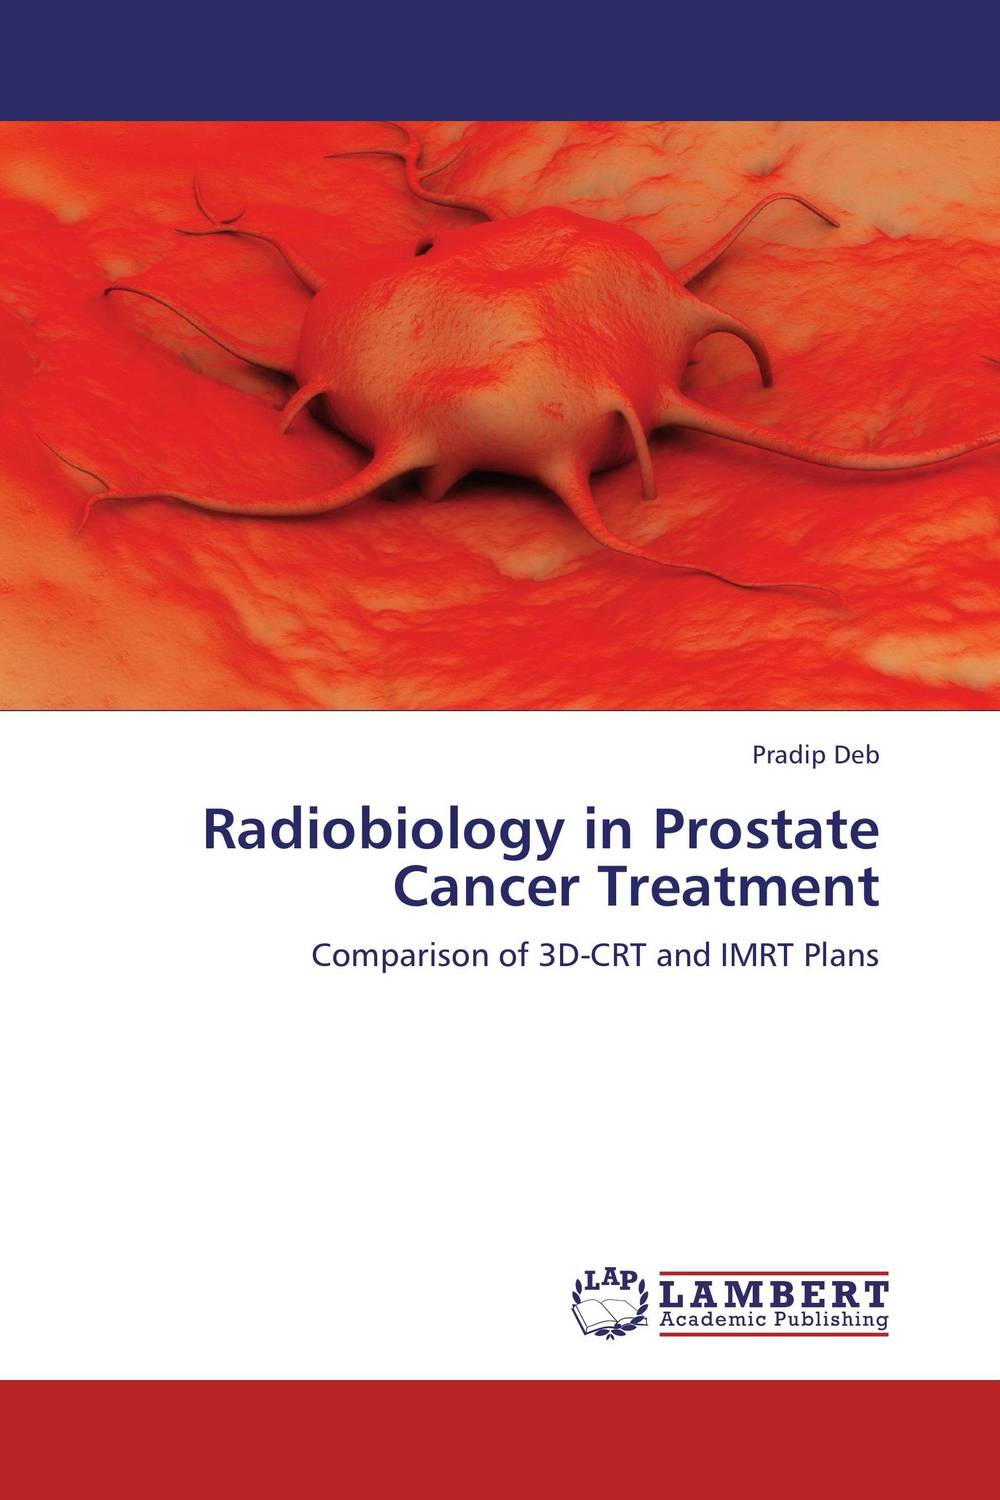 Radiobiology in Prostate Cancer Treatment jose sandoval how benefit finding leads to improved outcomes in prostate cancer